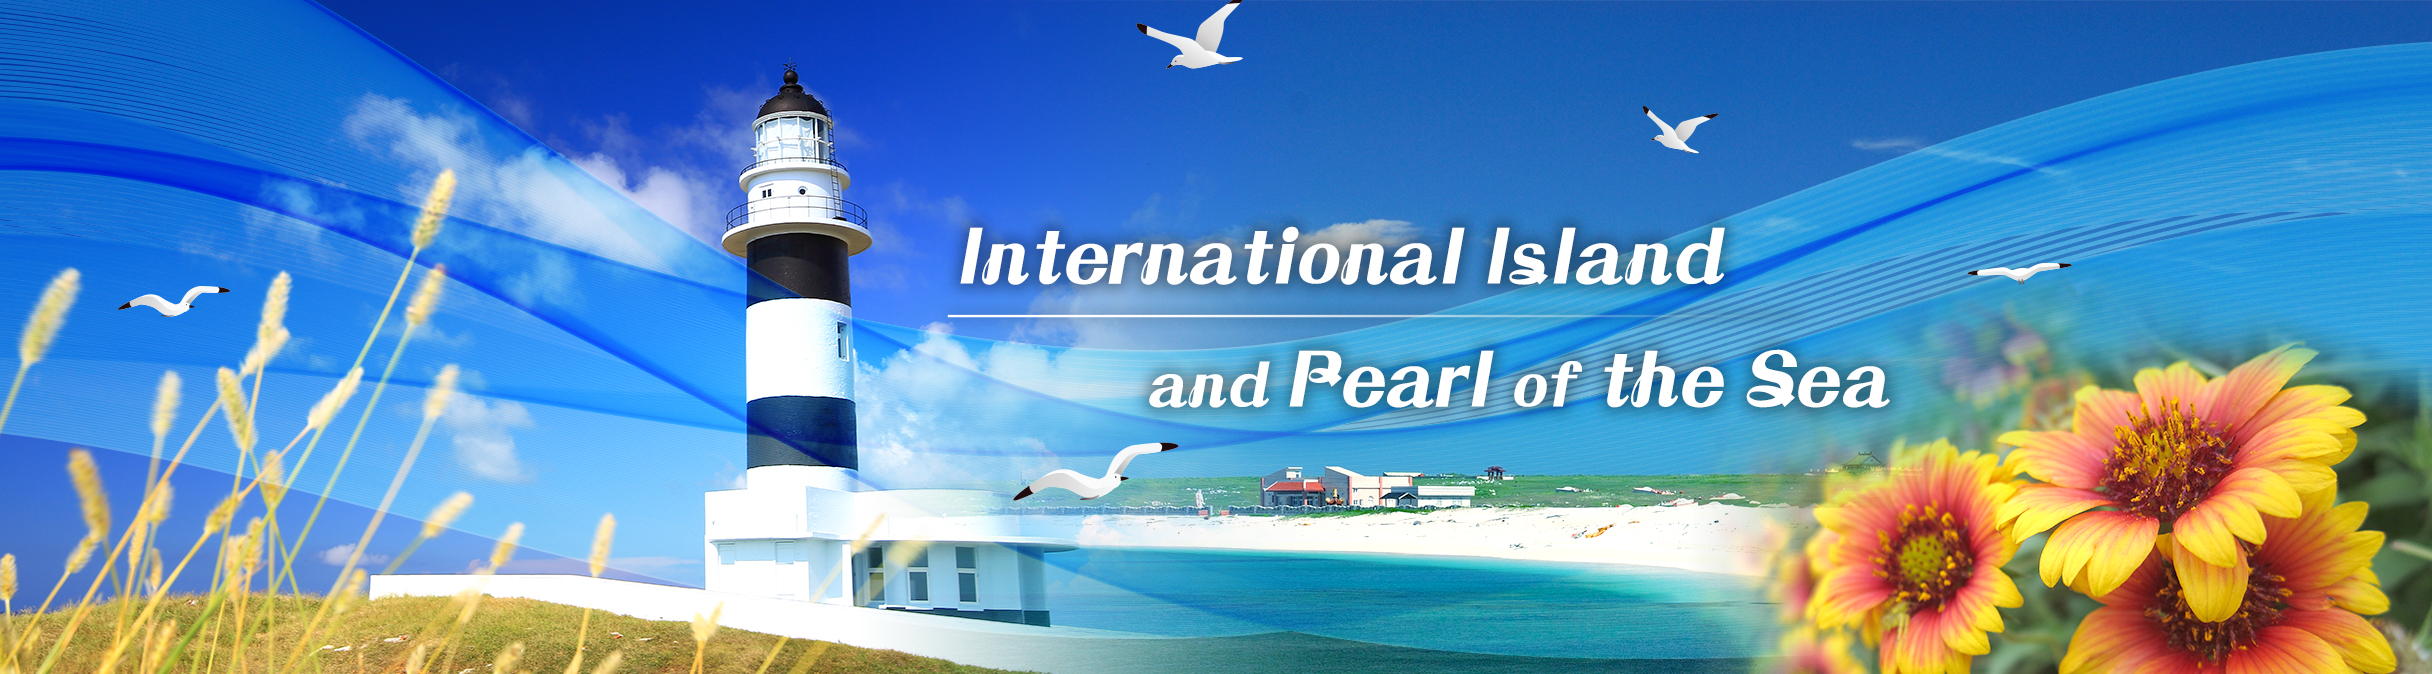 International Island and Pearl of the Sea(另開視窗)